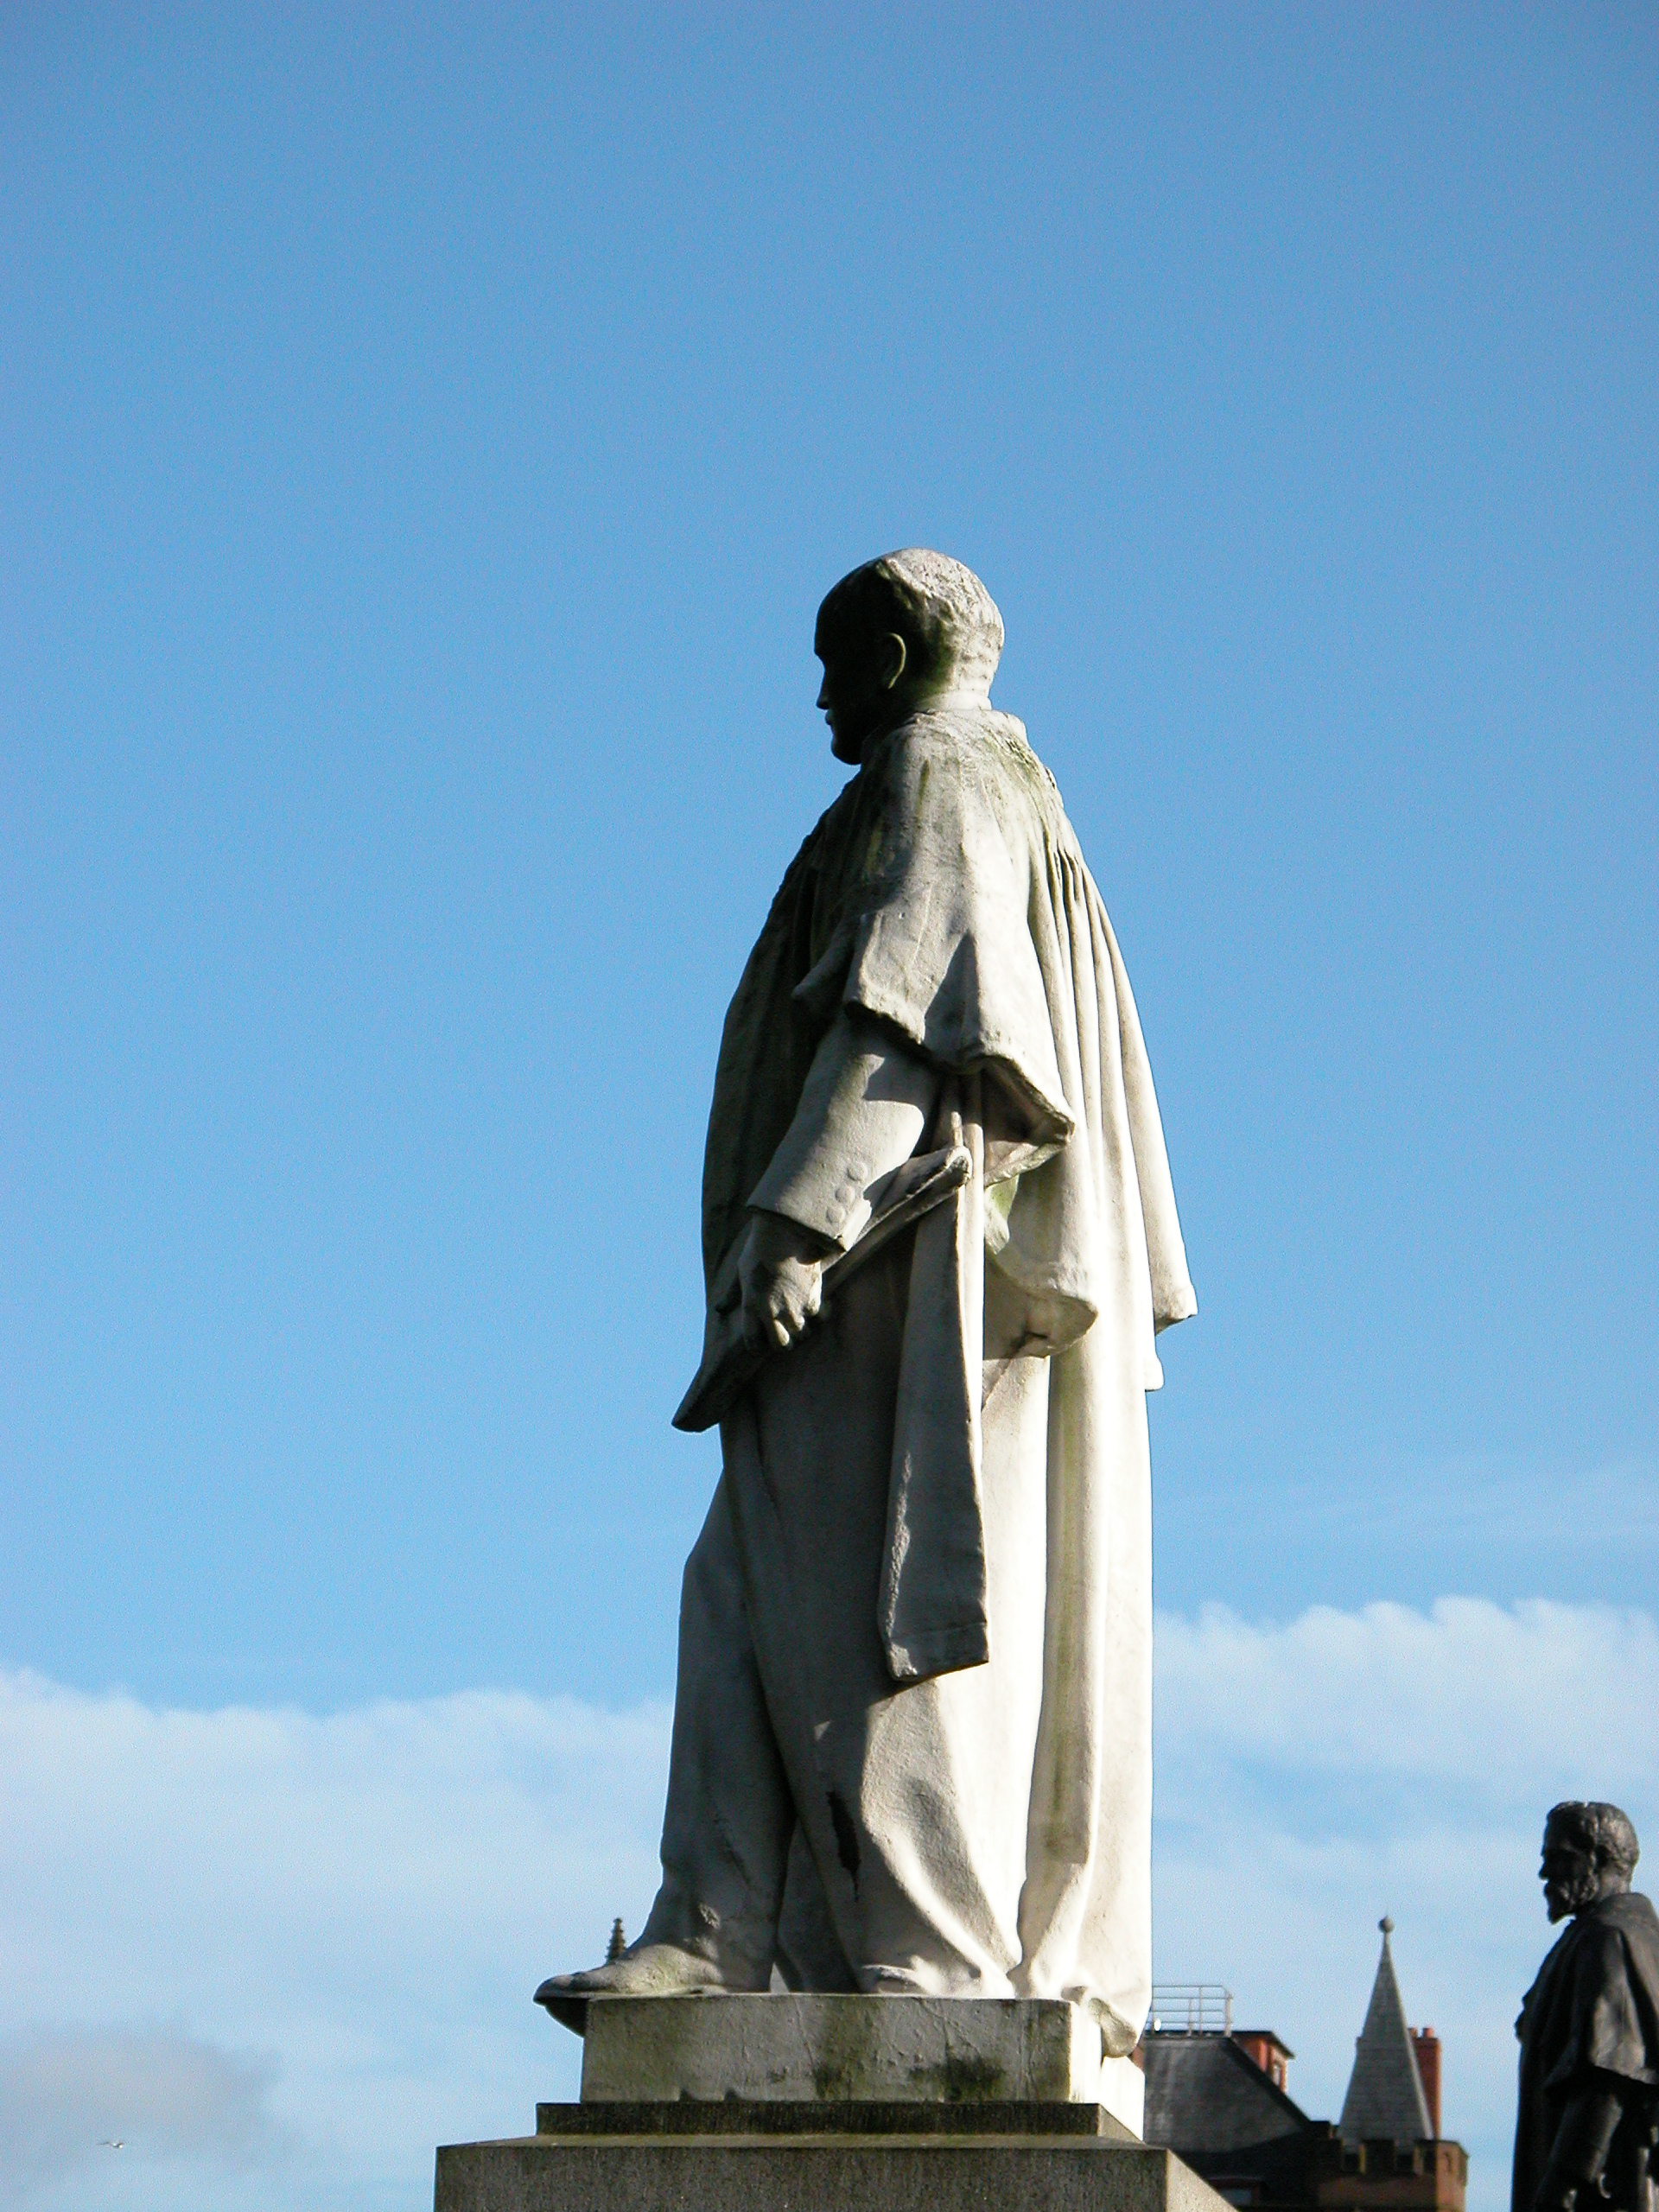 statue standing rock marble person saint holy carve carved stone out of chirstianity patriarch